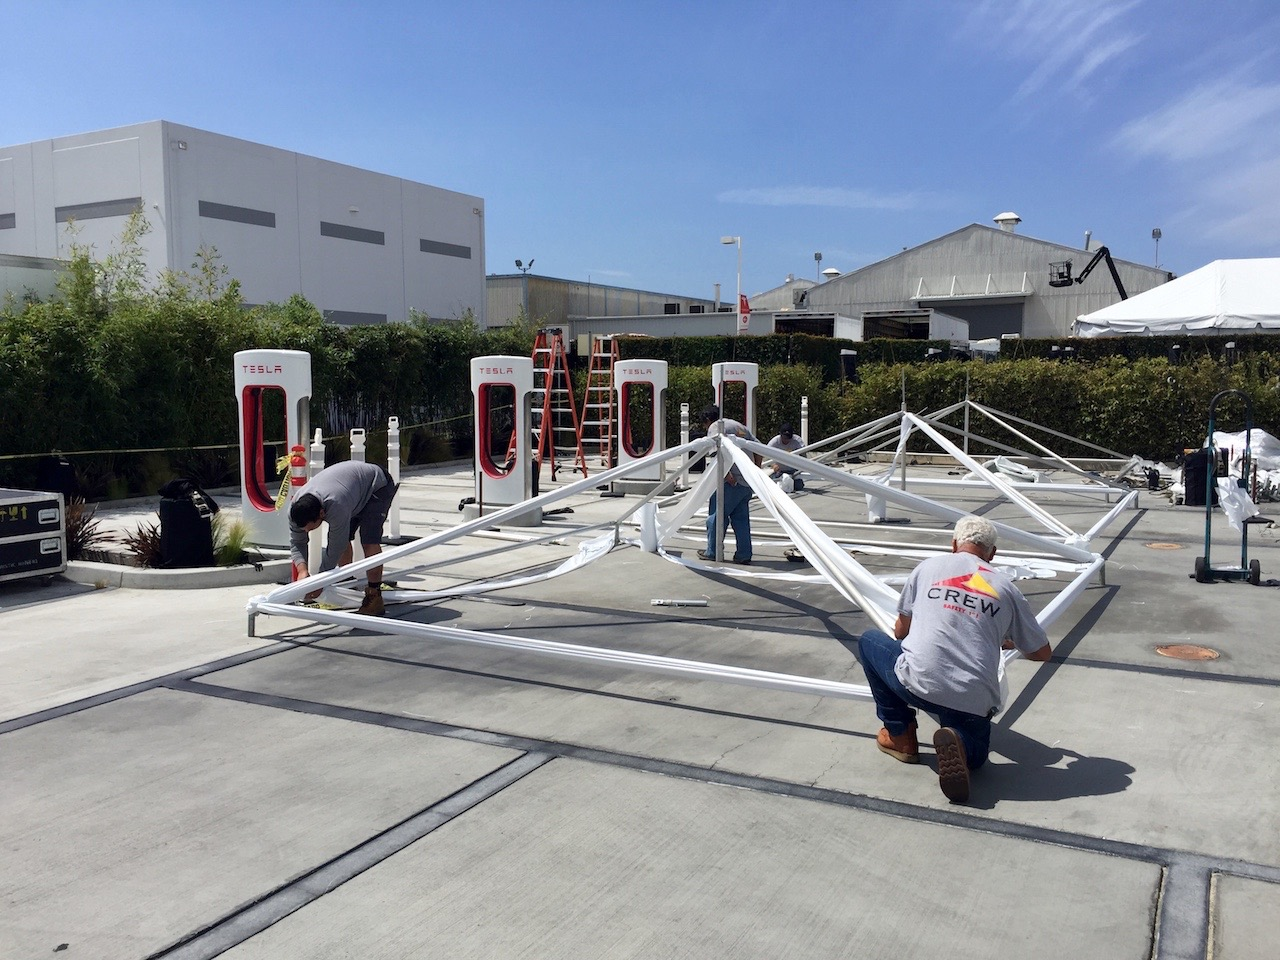 Tesla staff setting up tents for the Model 3 event